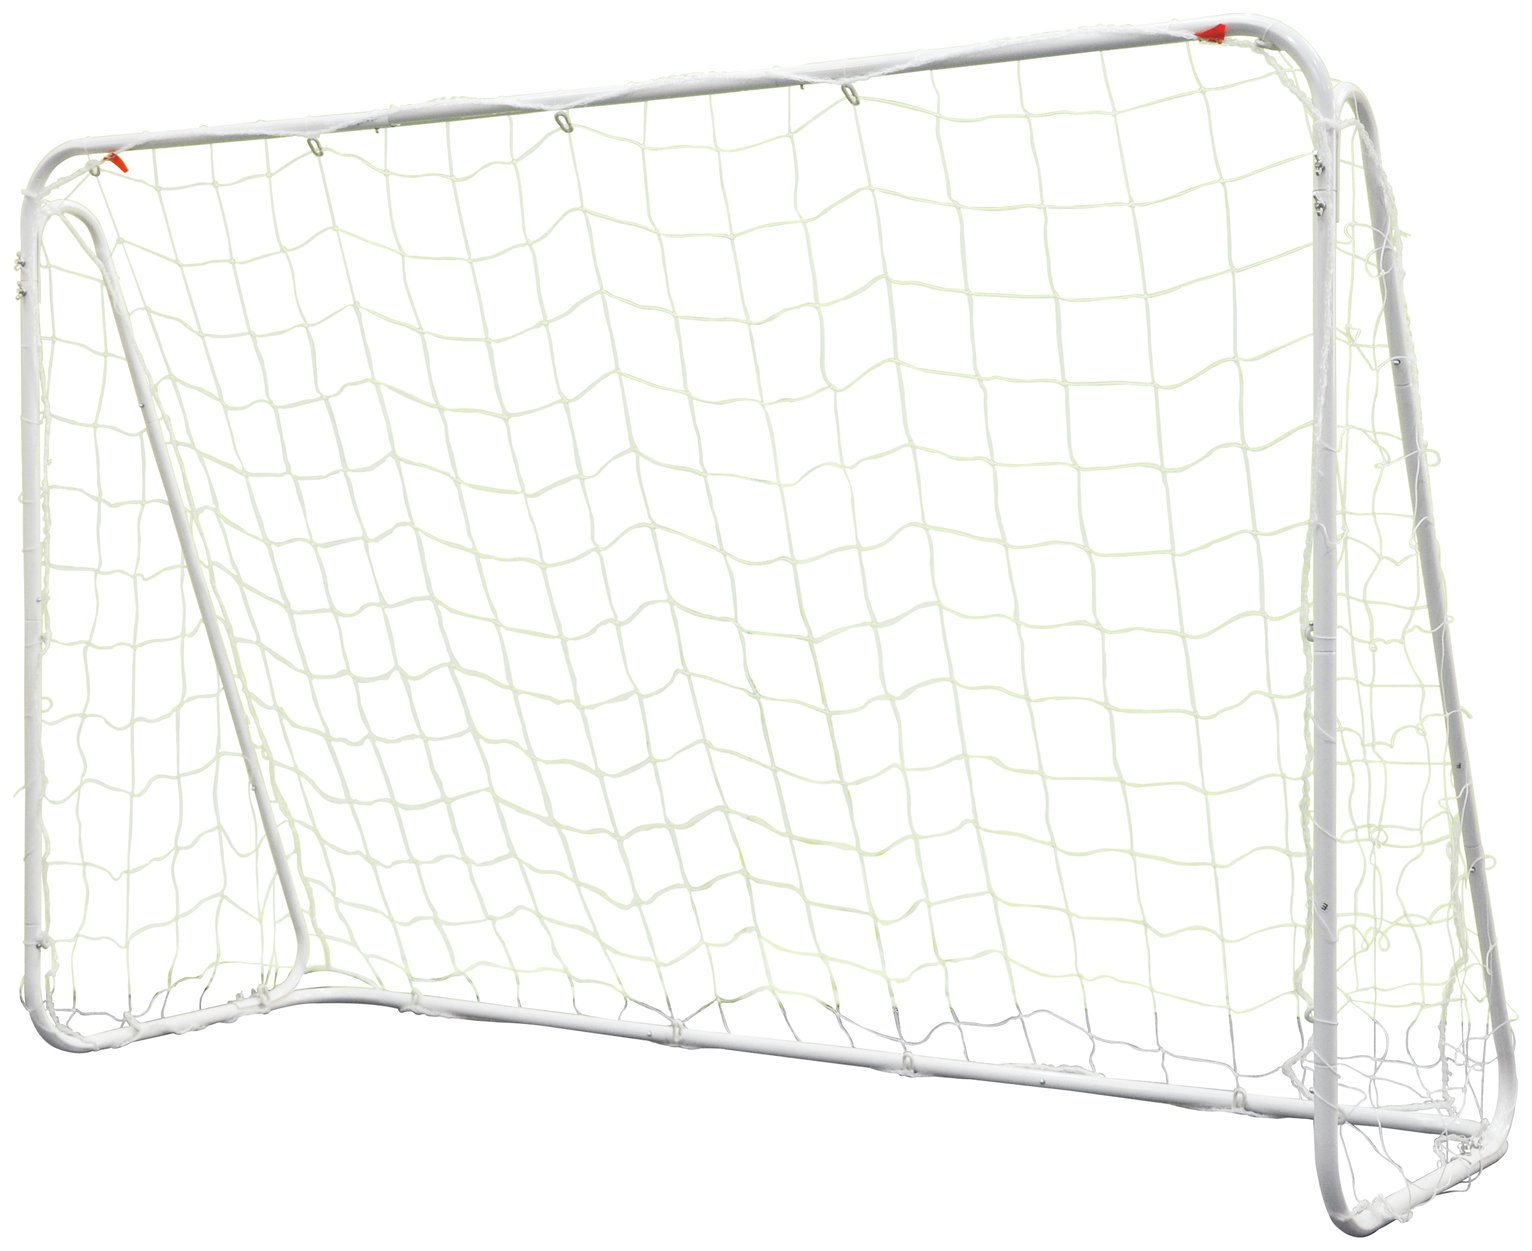 Opti 6 x 4 Quick Assembly Football Goal lowest price